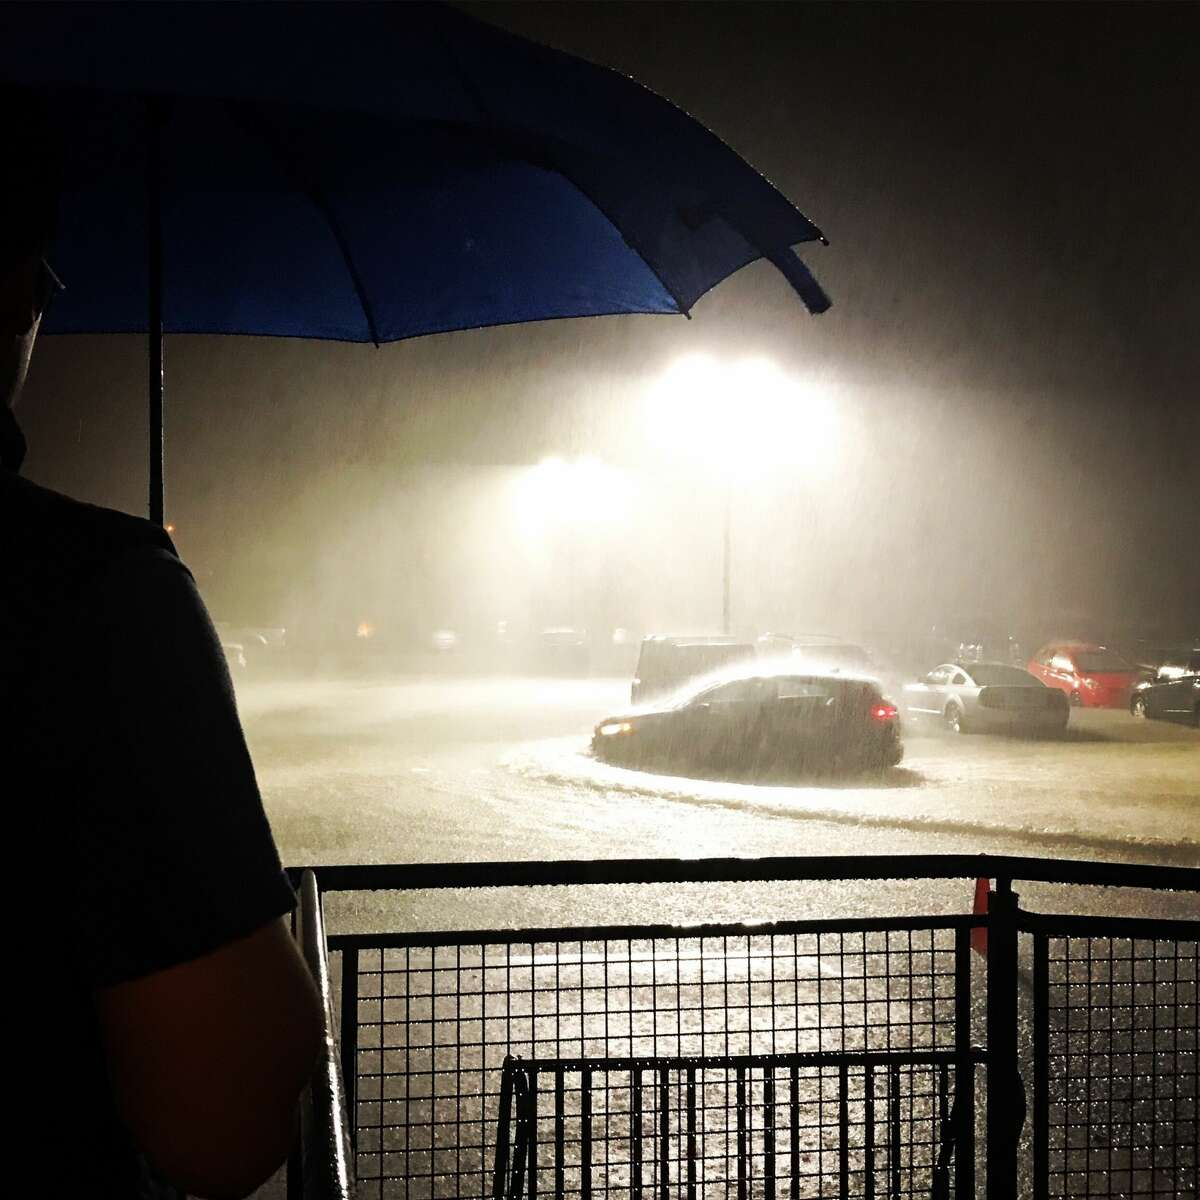 An apartment resident watches water accumulate in his parking lot as the rain continues to fall in Houston as a result of Hurricane Harvey on Saturday, August 26, 2017. (Elizabeth Conley/Houston Chronicle)